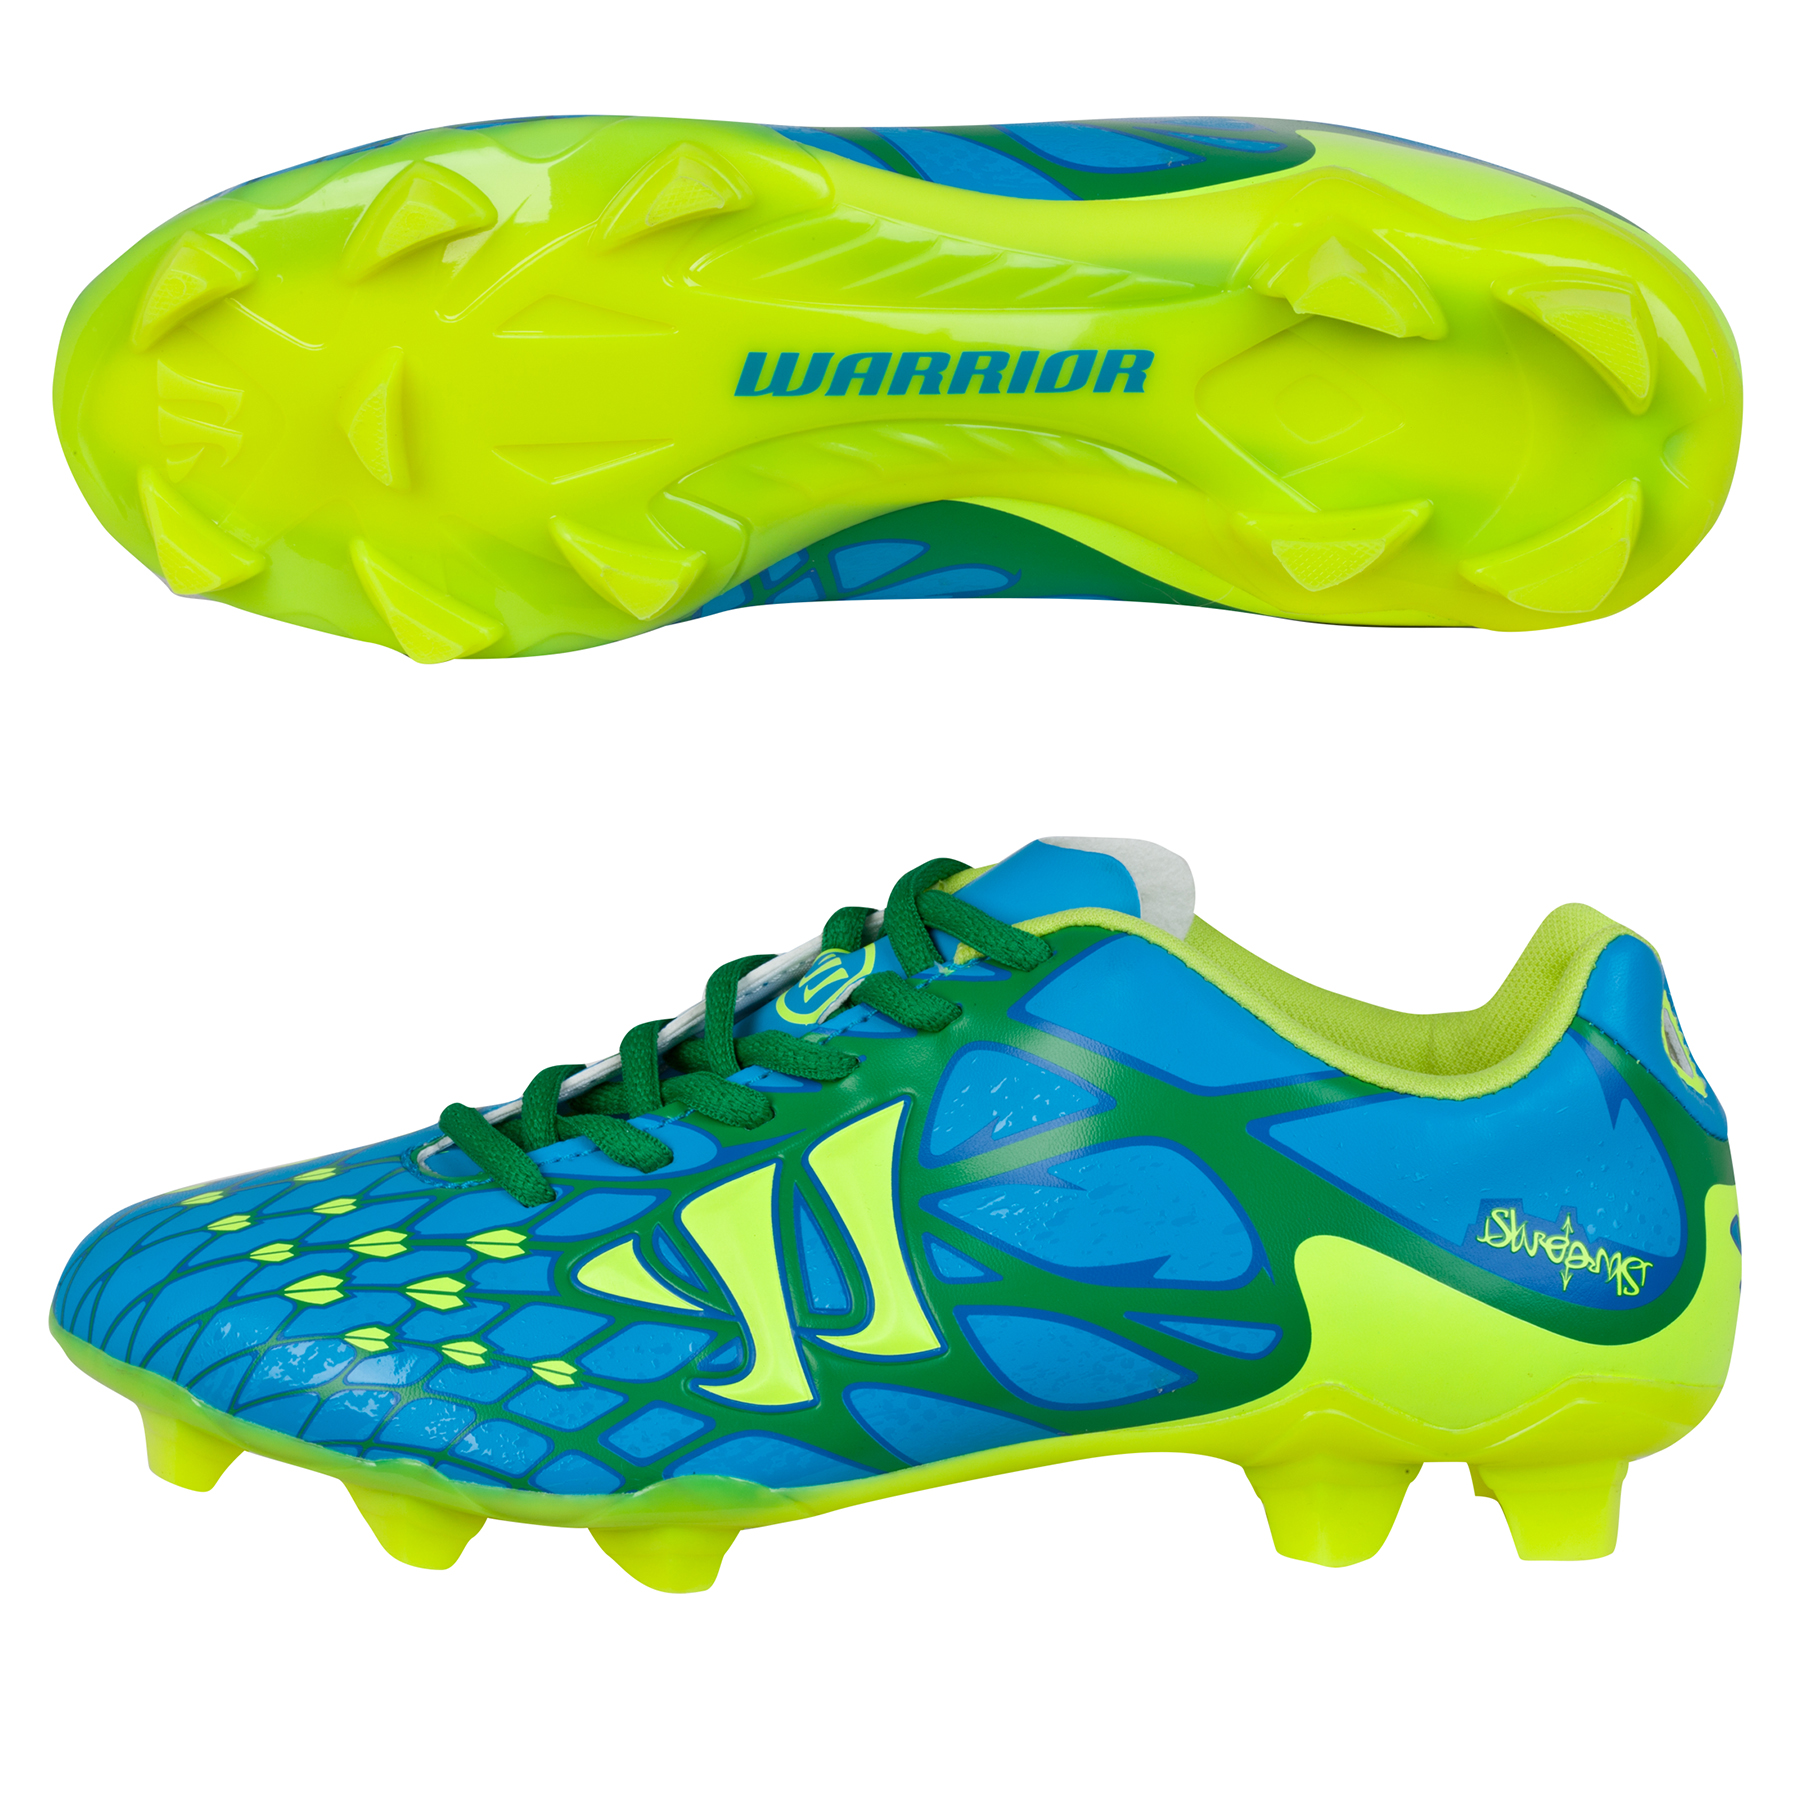 Warrior Skreamer II Charge Firm Ground - Kids Blue